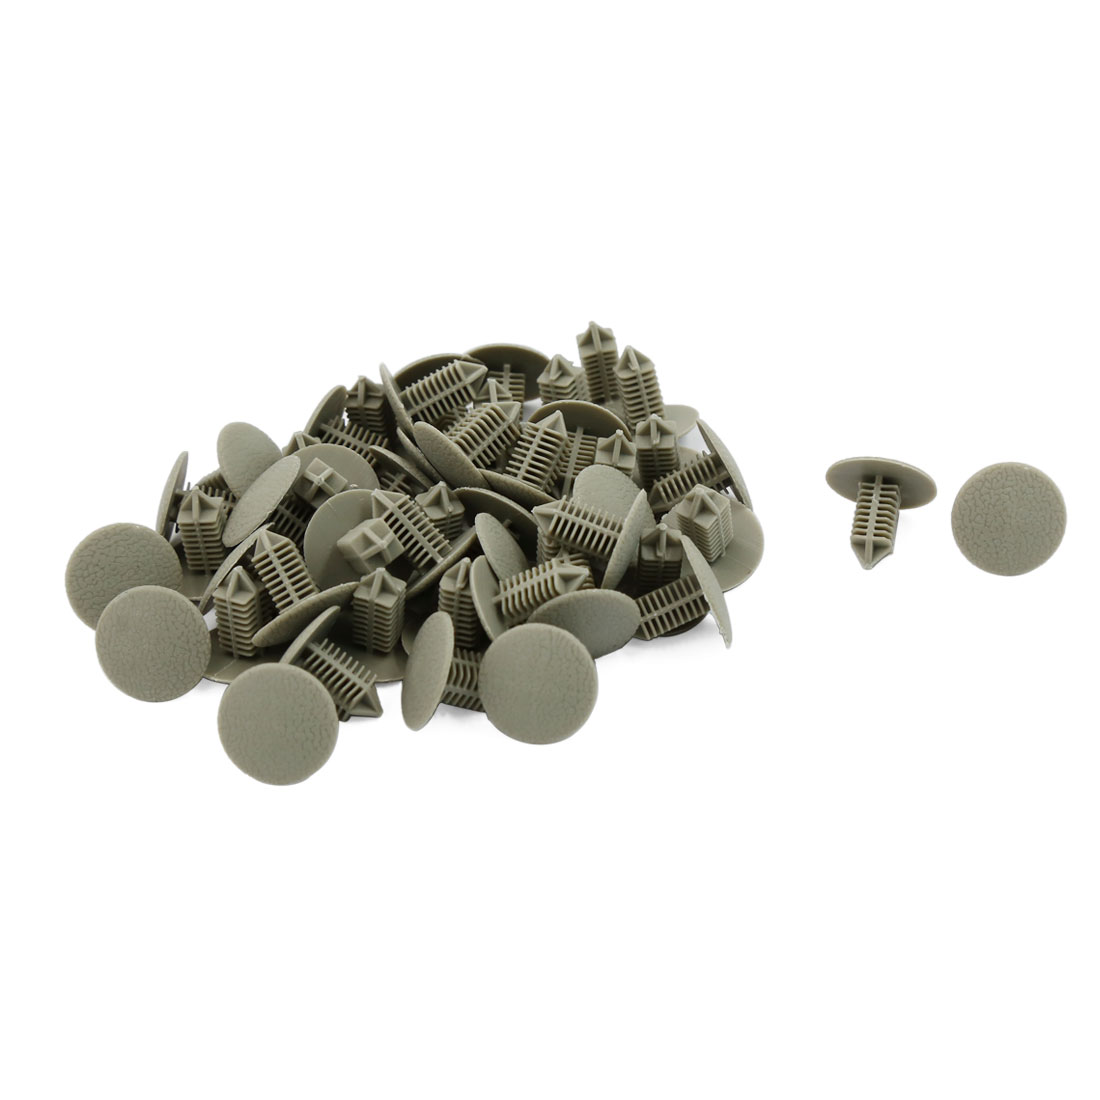 50 Pcs 6.5mm Hole Gray Plastic Rivets Bumper Door Fastener Push Clips for Car